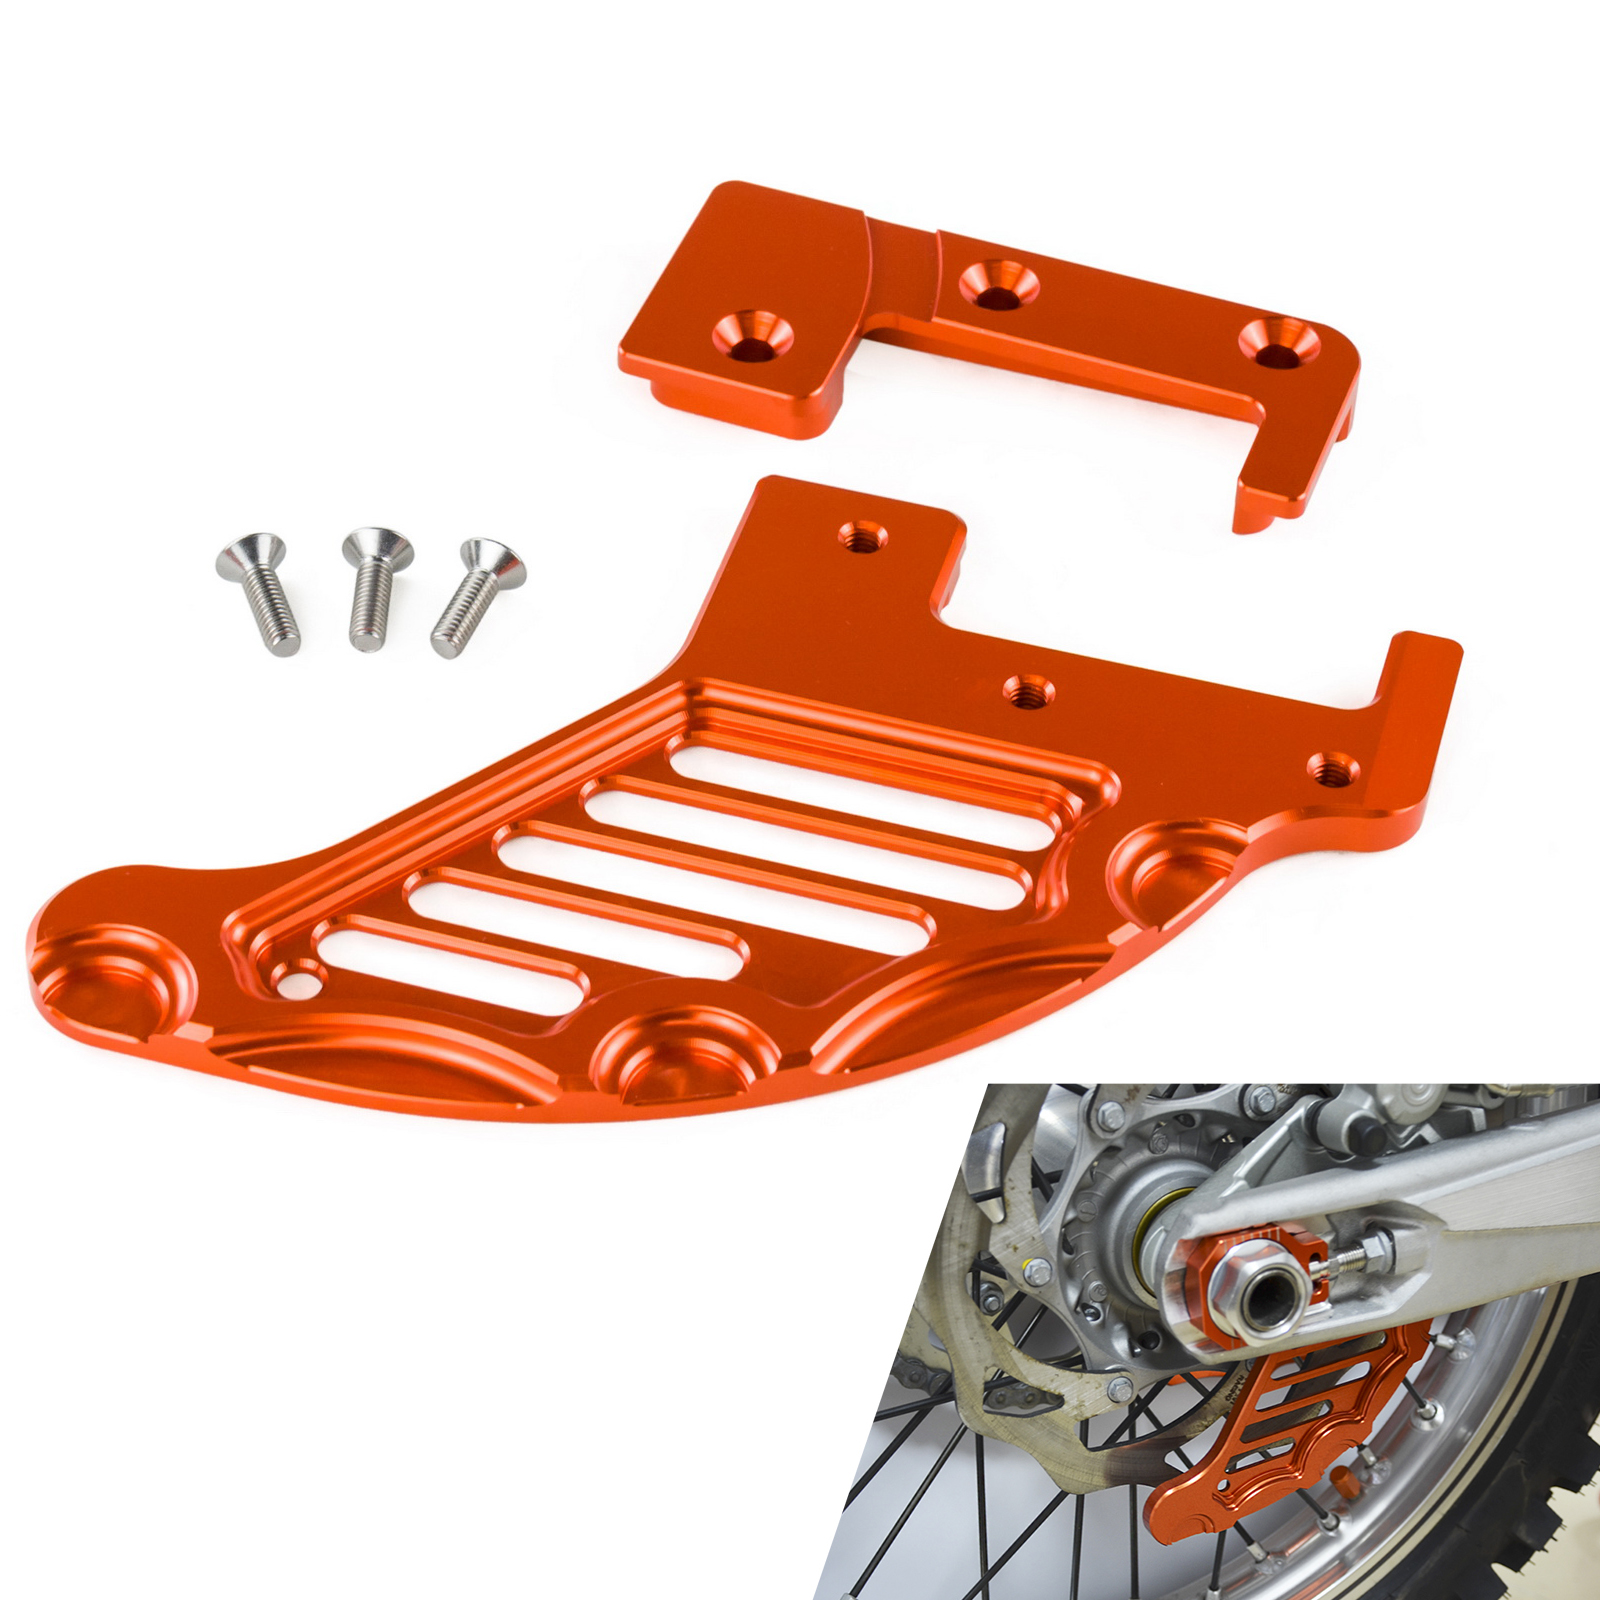 Rear Brake Disc Guard For KTM SX SXF EXC EXCF XC XCF XCW XCFW 125 150 200 250 300 350 400 450 500 505 530 2004-2017 2018 2019